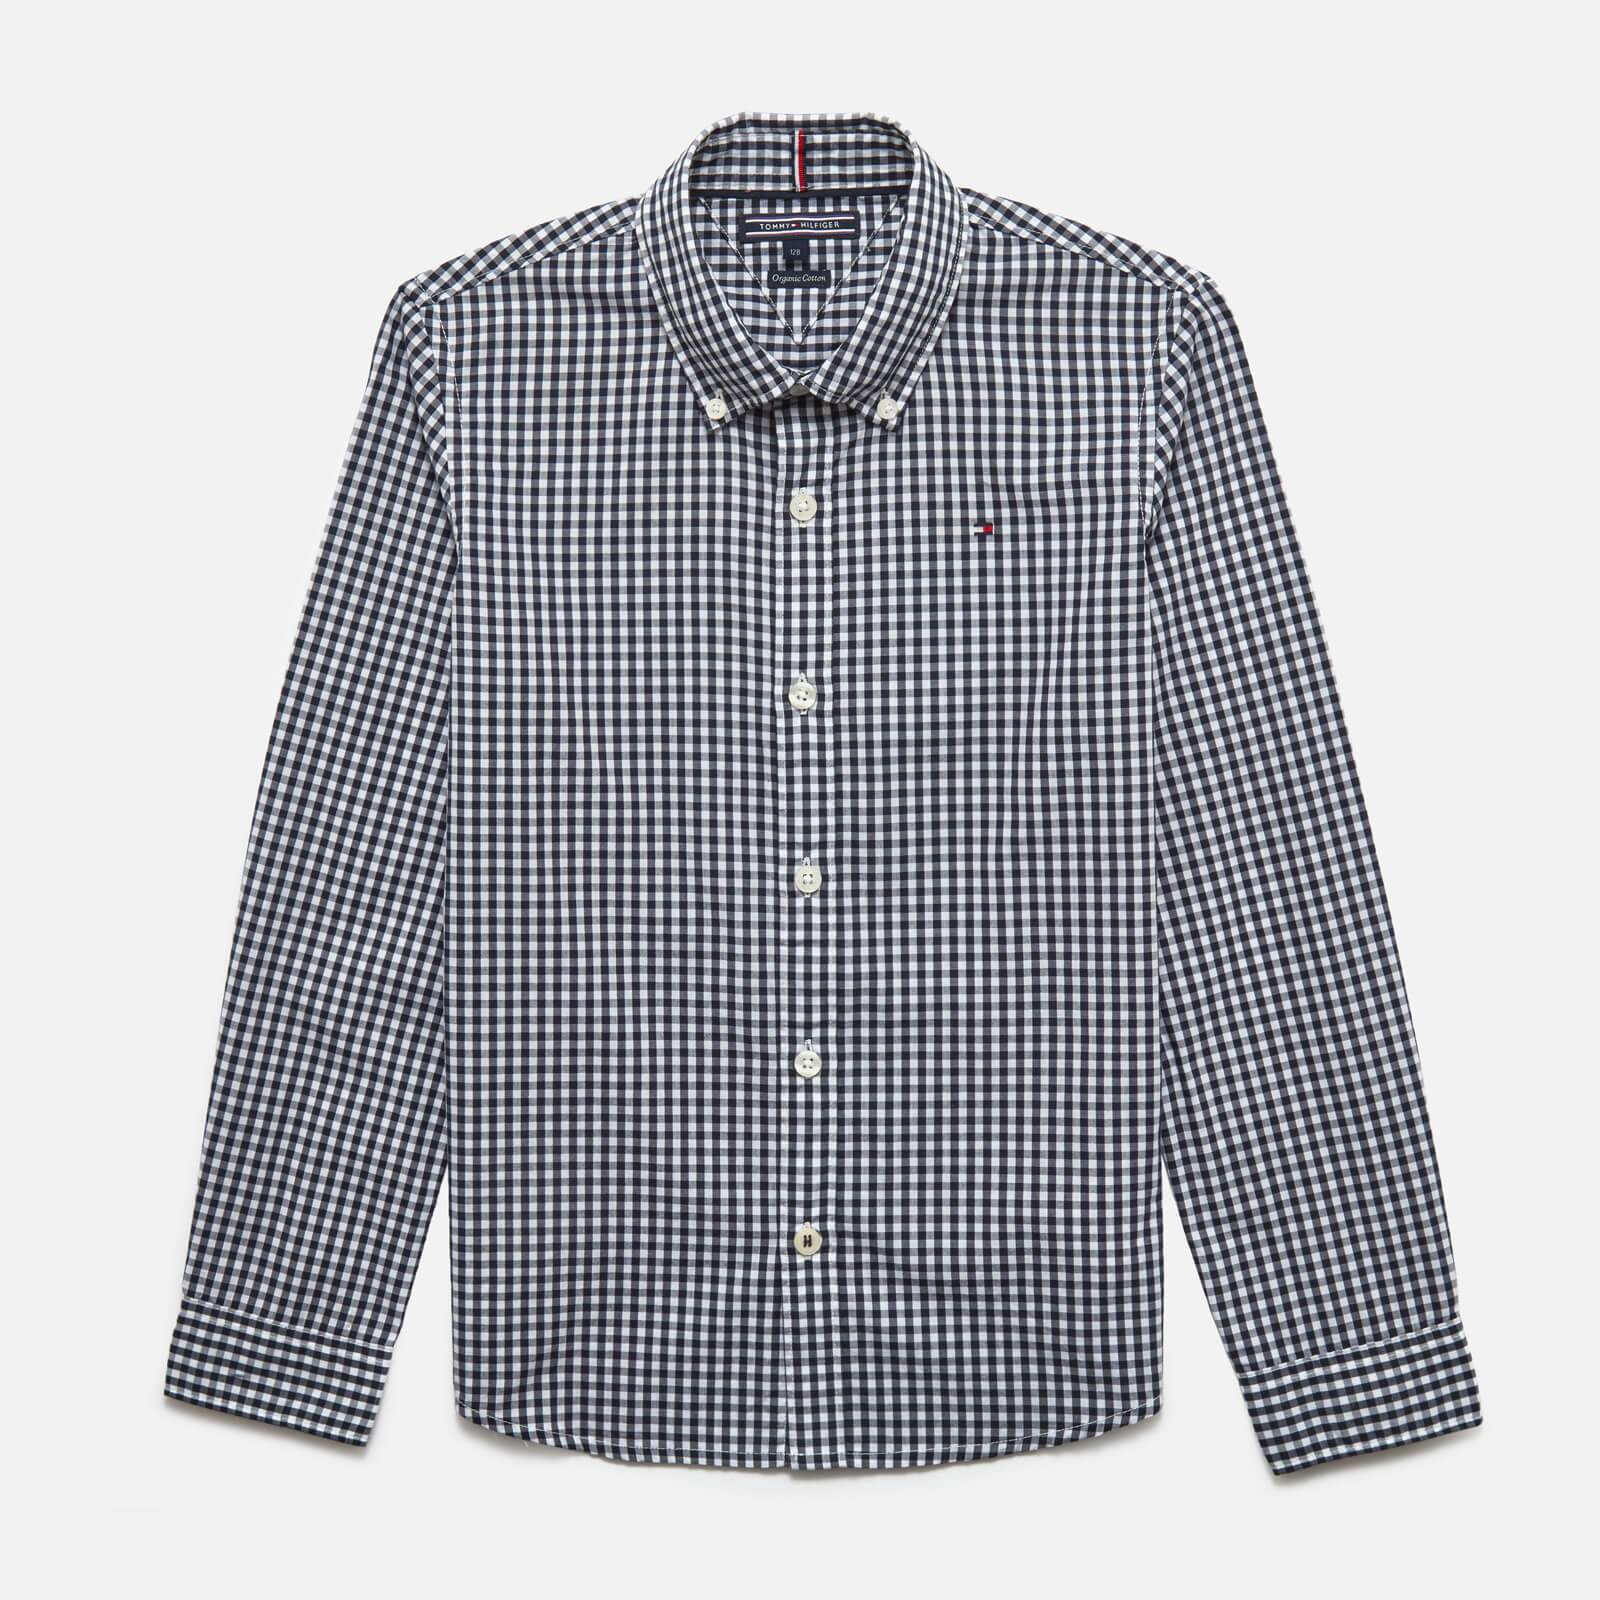 Tommy Kids Boys' Long Sleeve Gingham Shirt - Sky Captain - 12 Years